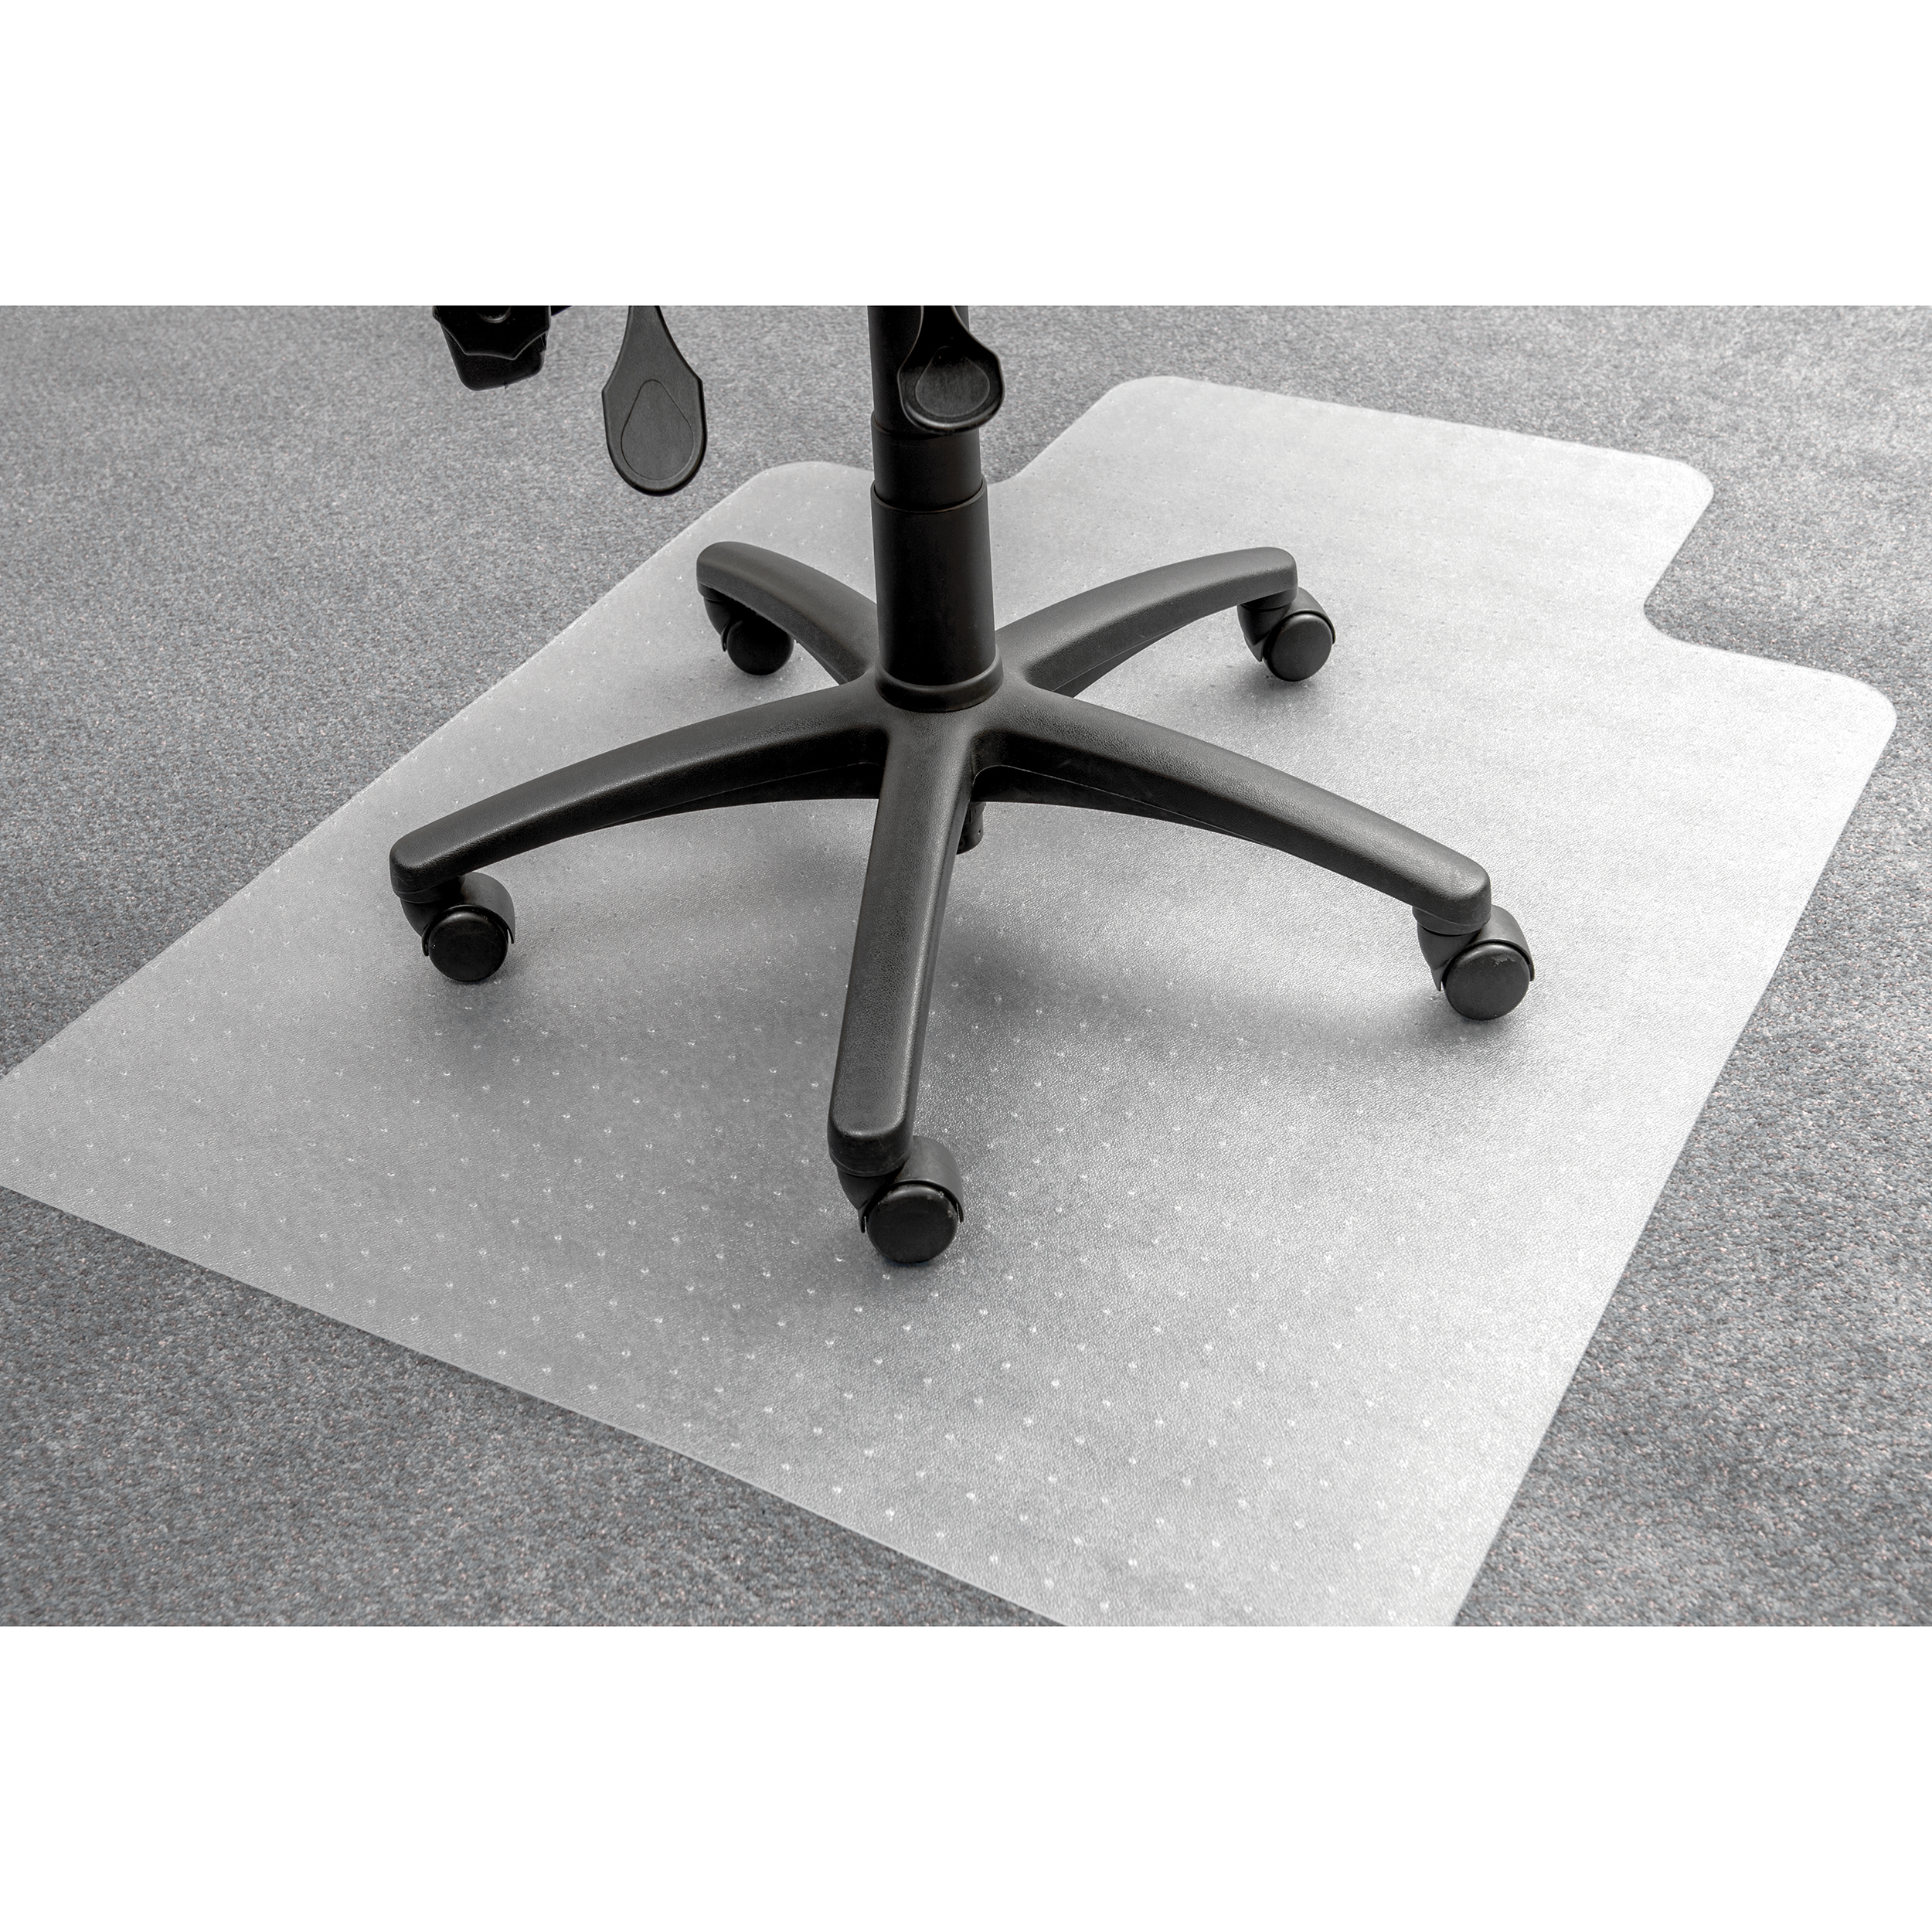 Chair mat 5 Star Office Chair Mat For Carpets PVC Lipped 900x1200mm Clear/Transparent